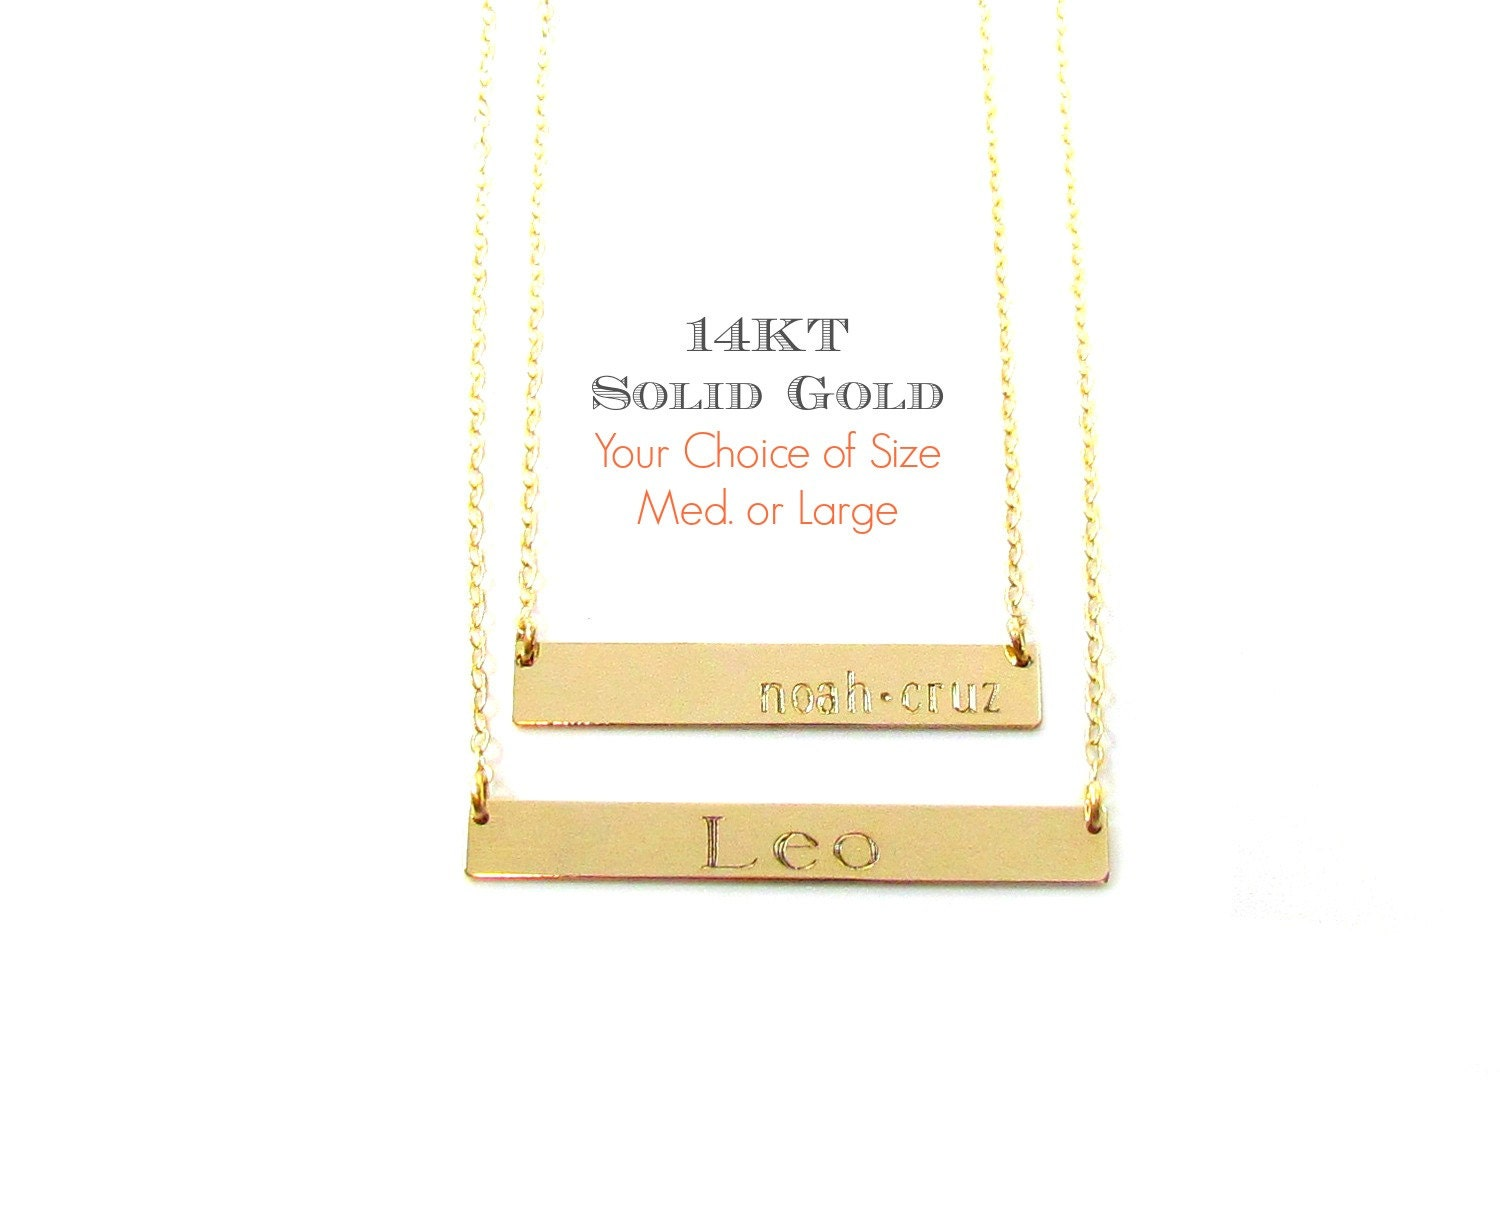 14kt Solid Gold Bar Necklace Engraved Bar Necklace Etsy